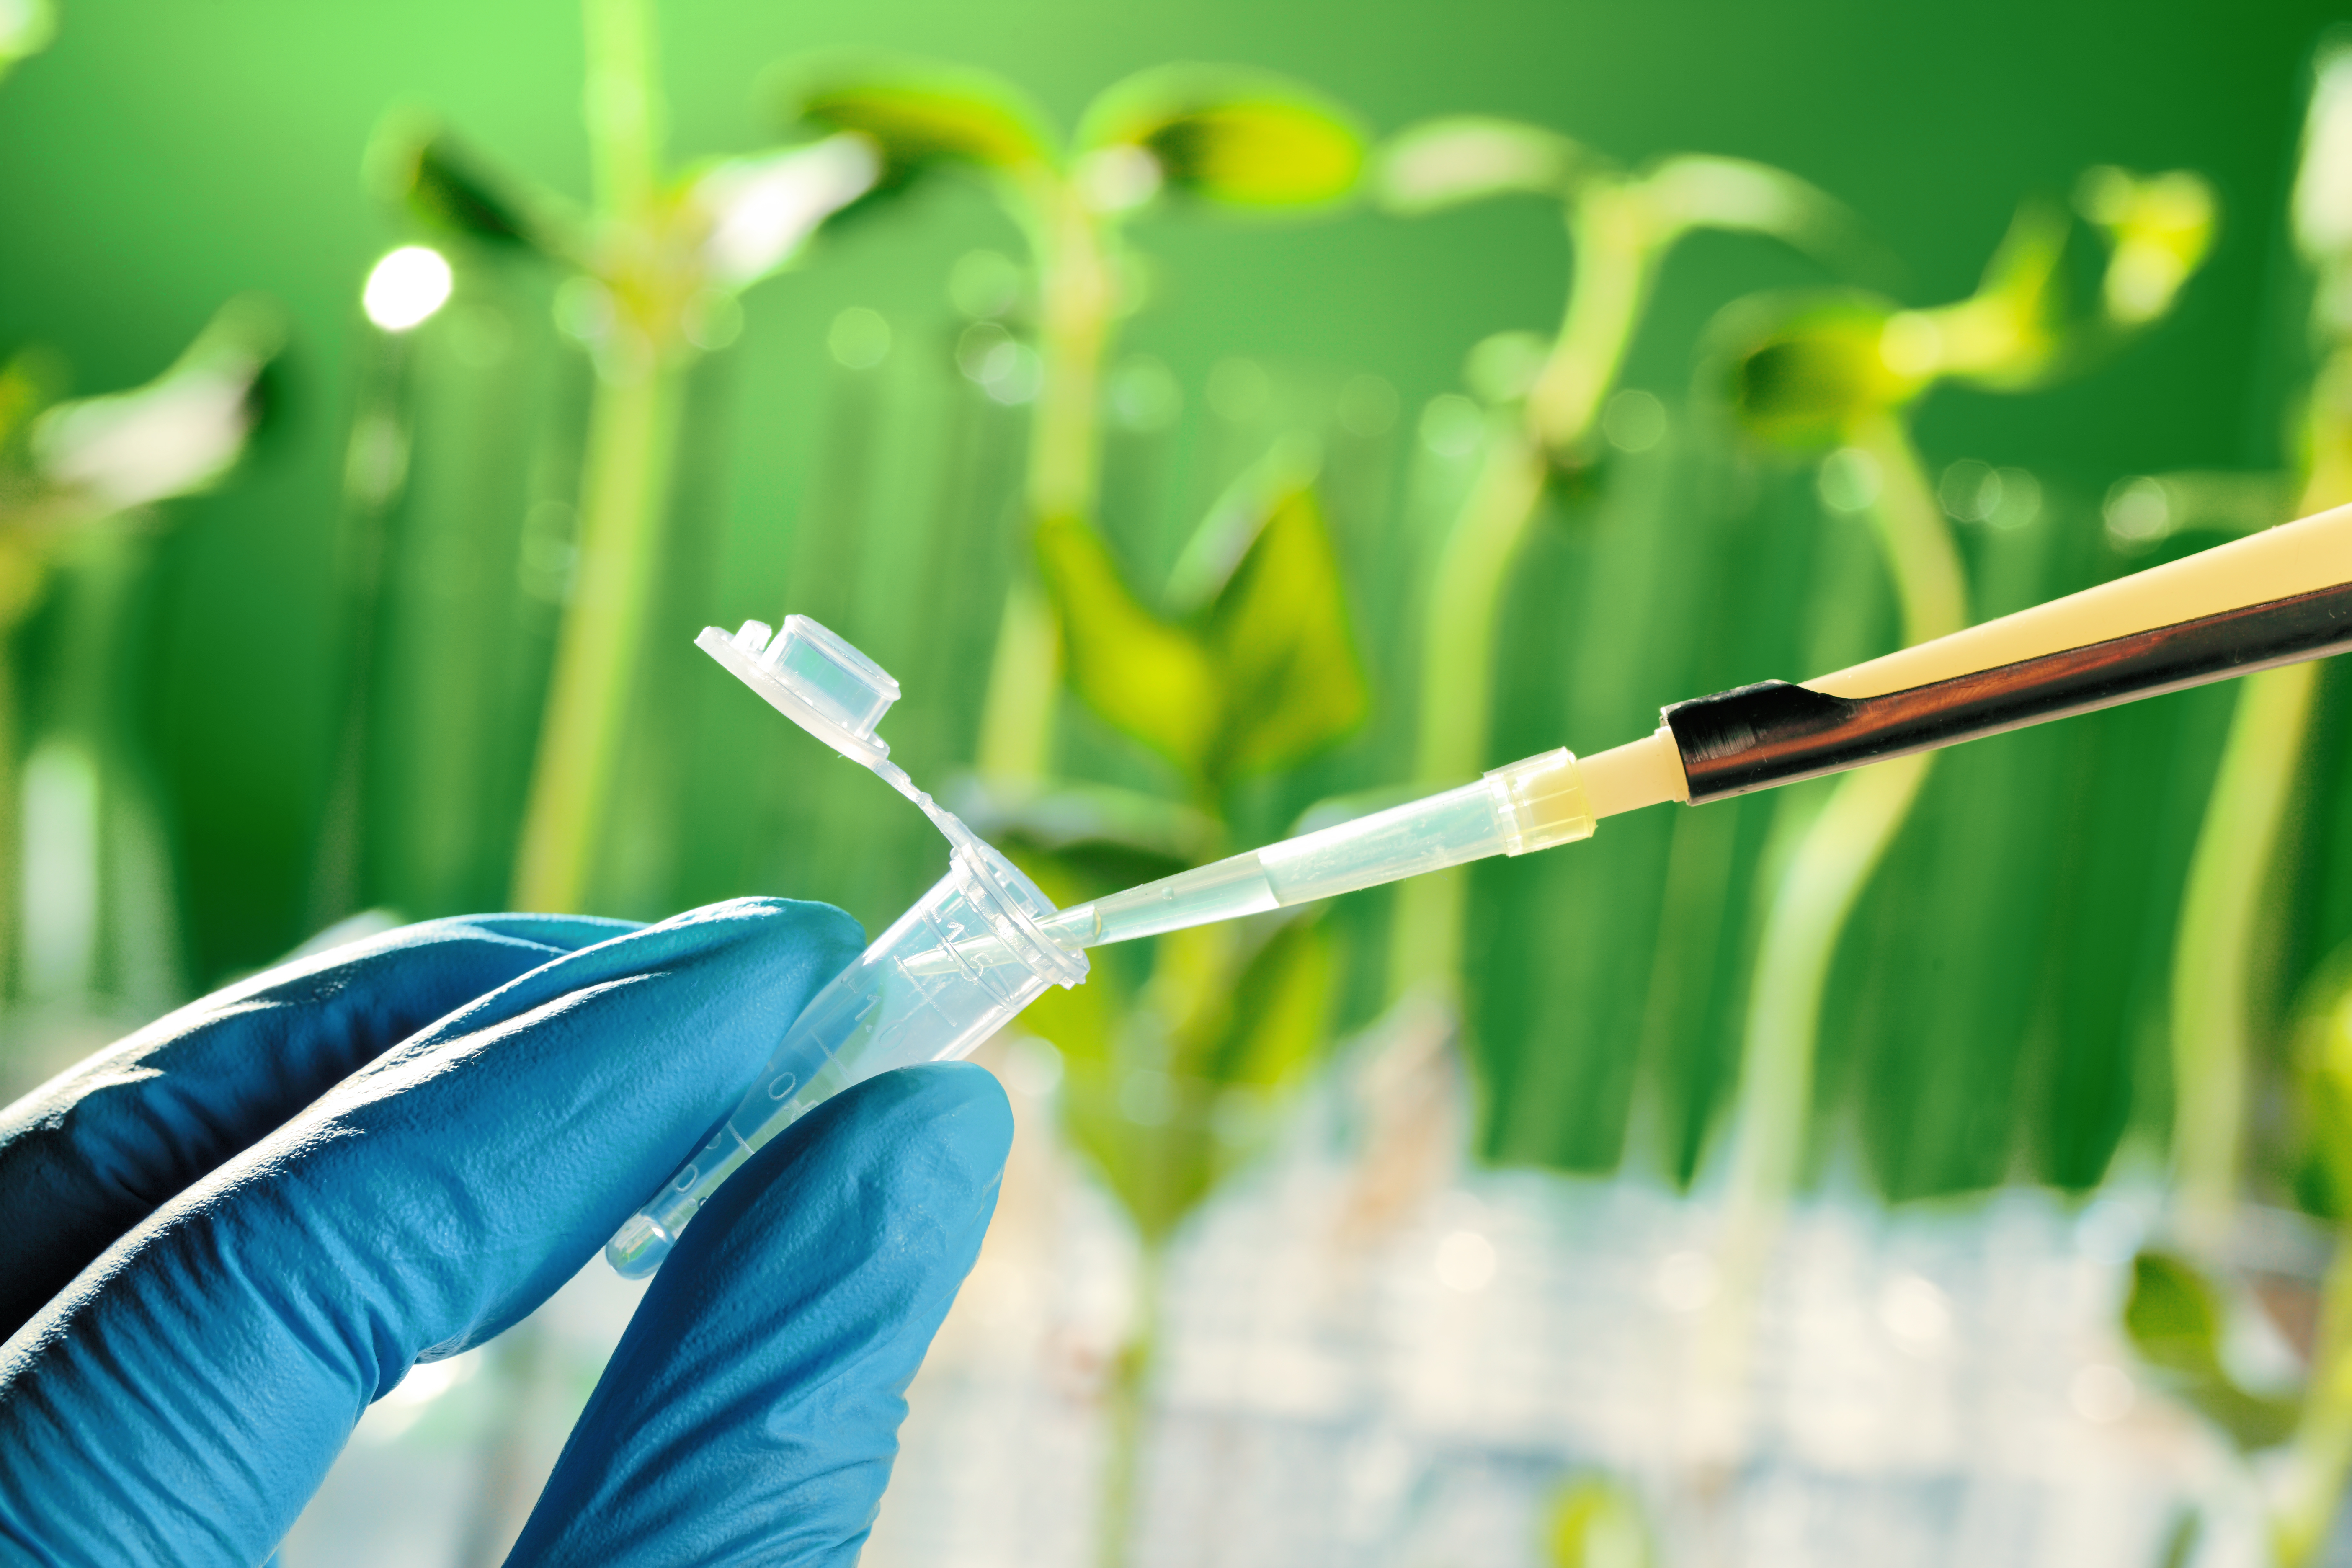 BBI JU GreenProtein project: Novel protein product offers taste of success